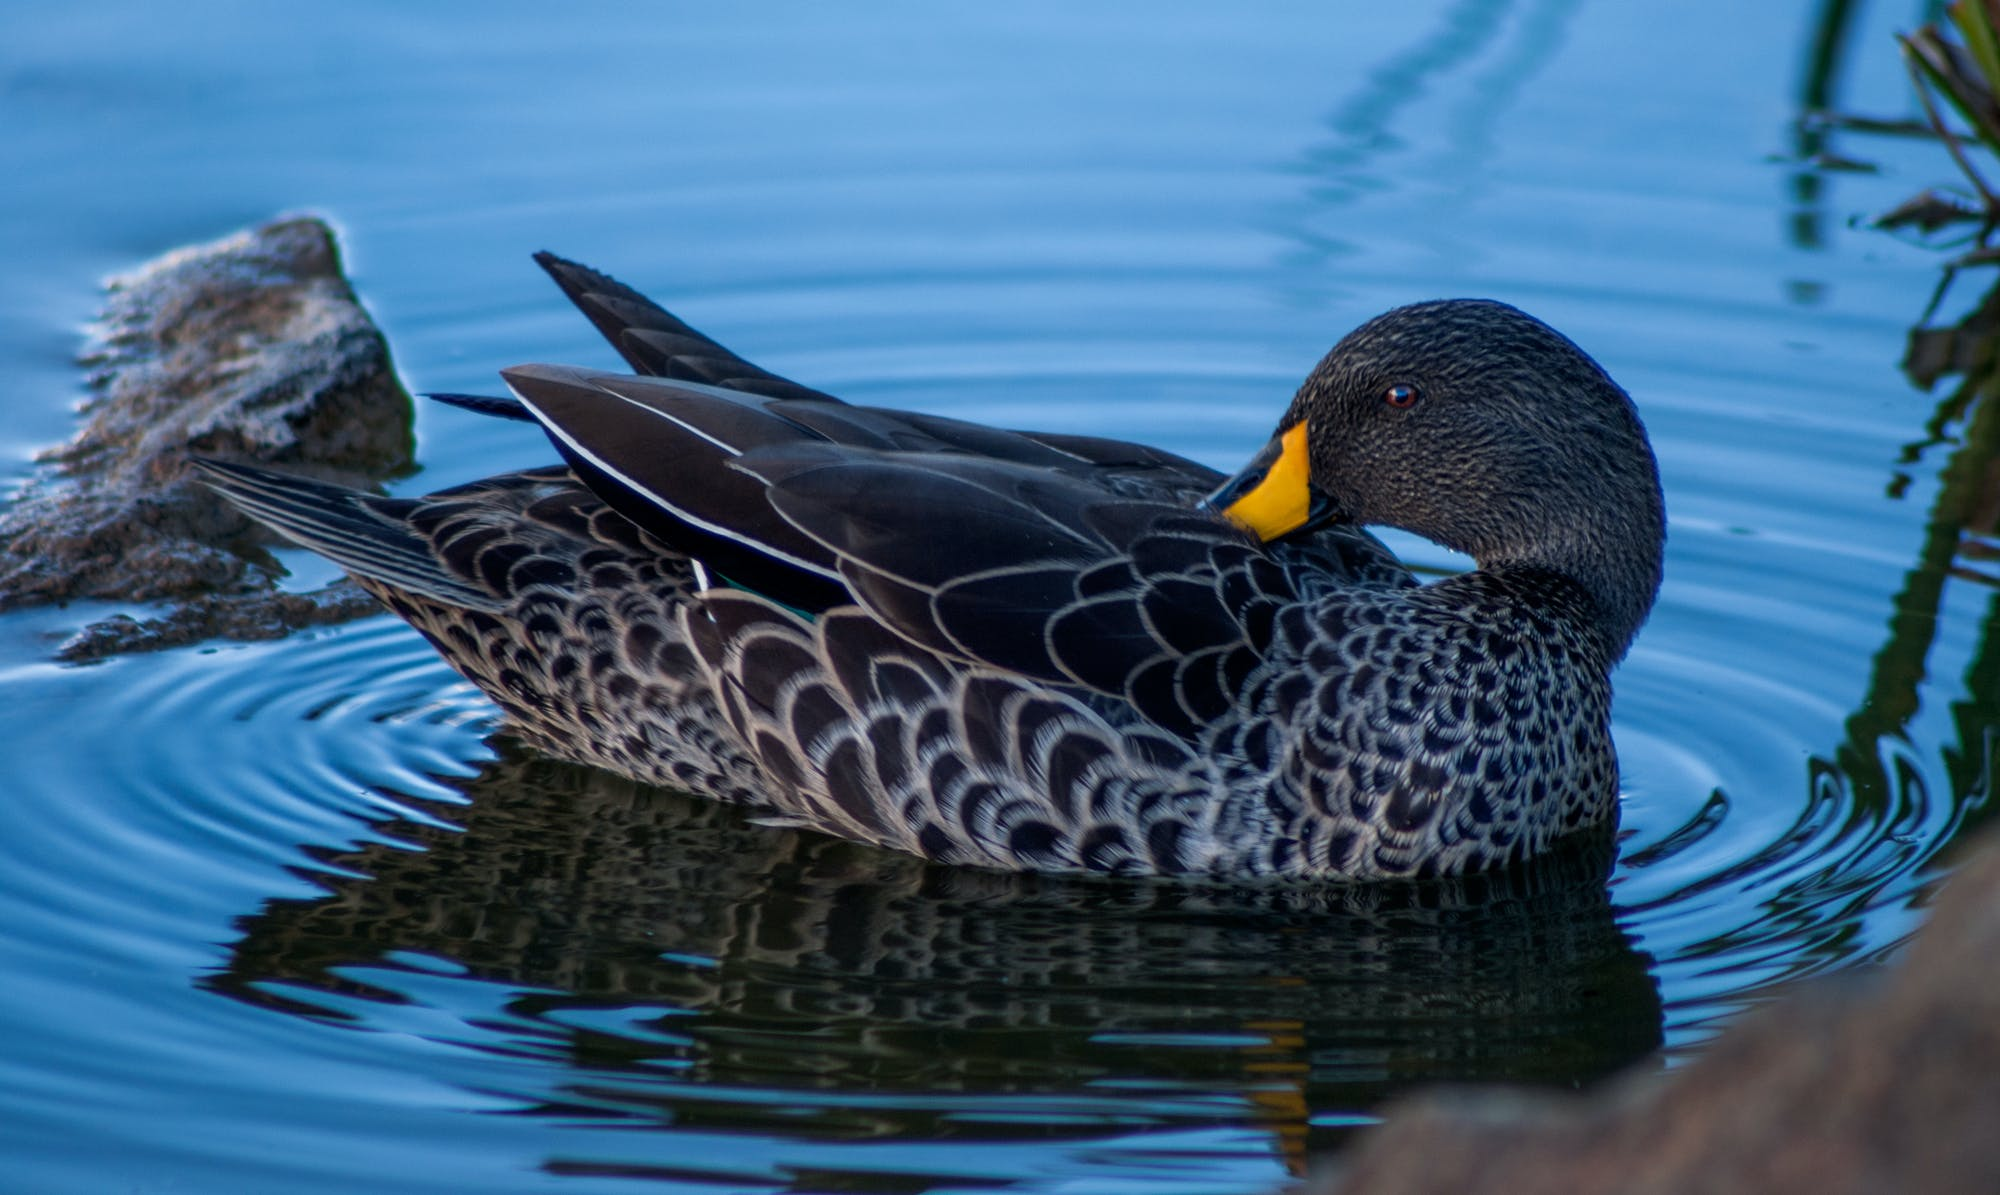 Brown Duck at the Body of Water